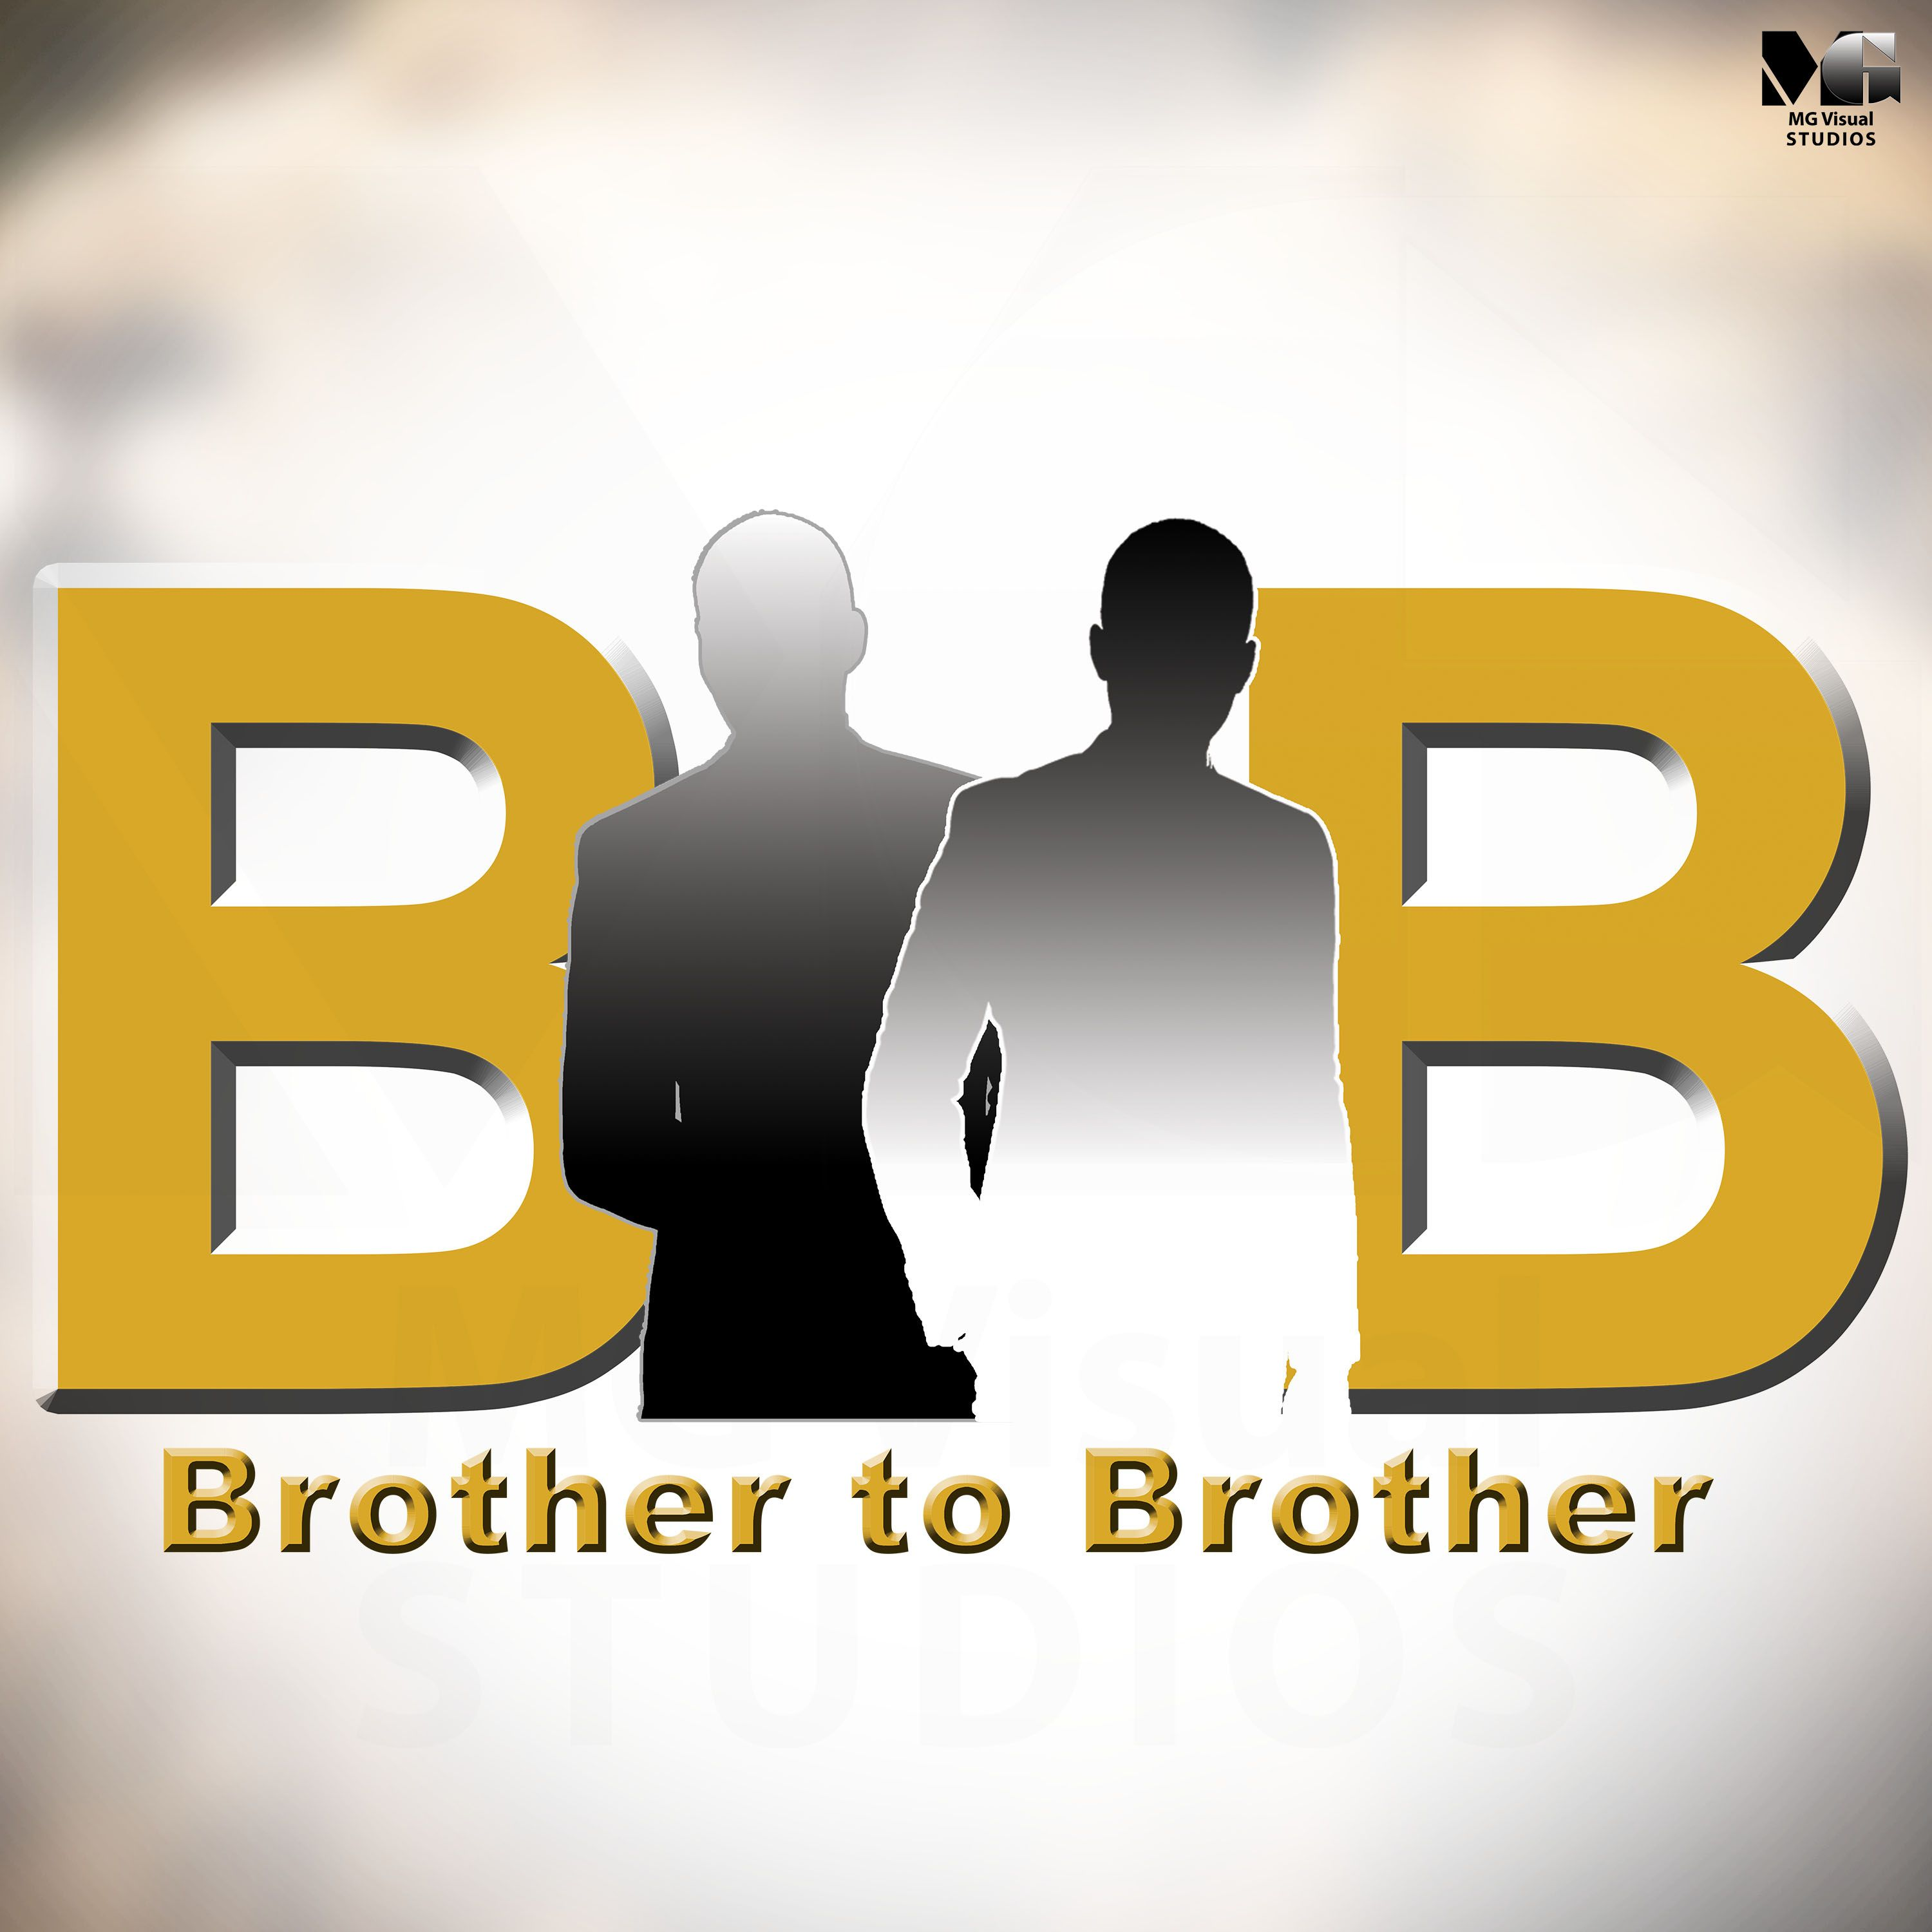 Brother Logo - Promotional Material | MG Visual Studios